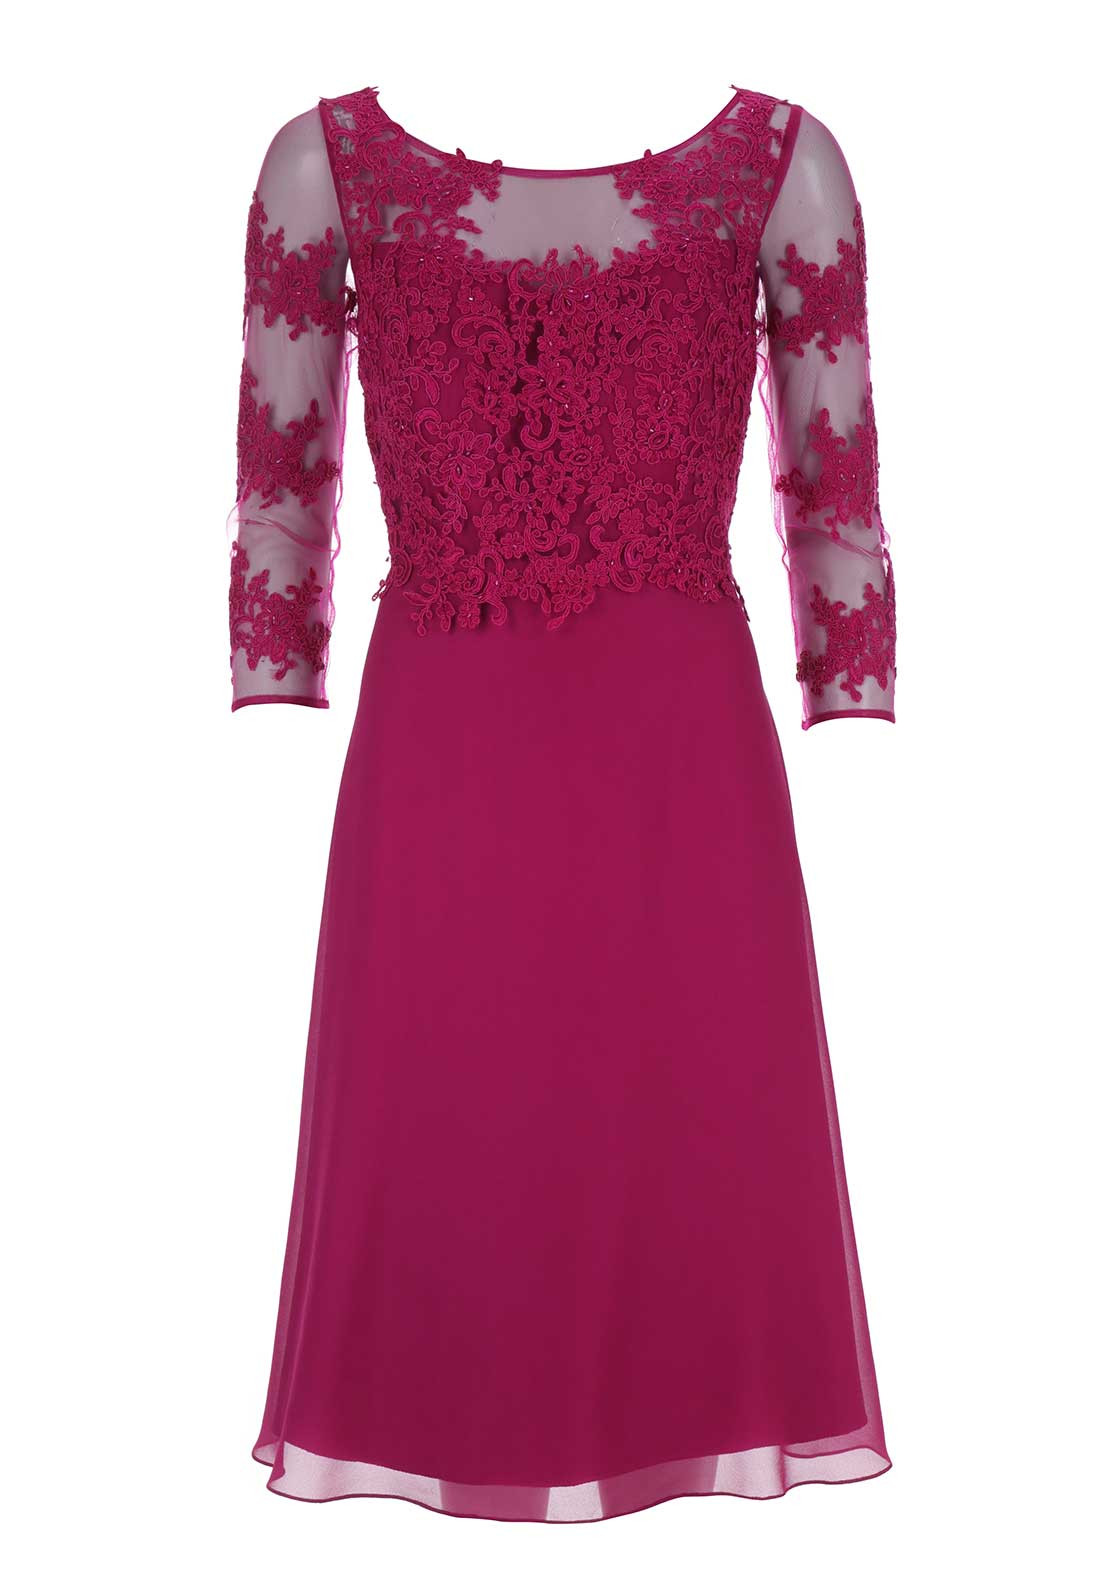 Sonia Pena Embroidered Overlay Dress, Pink